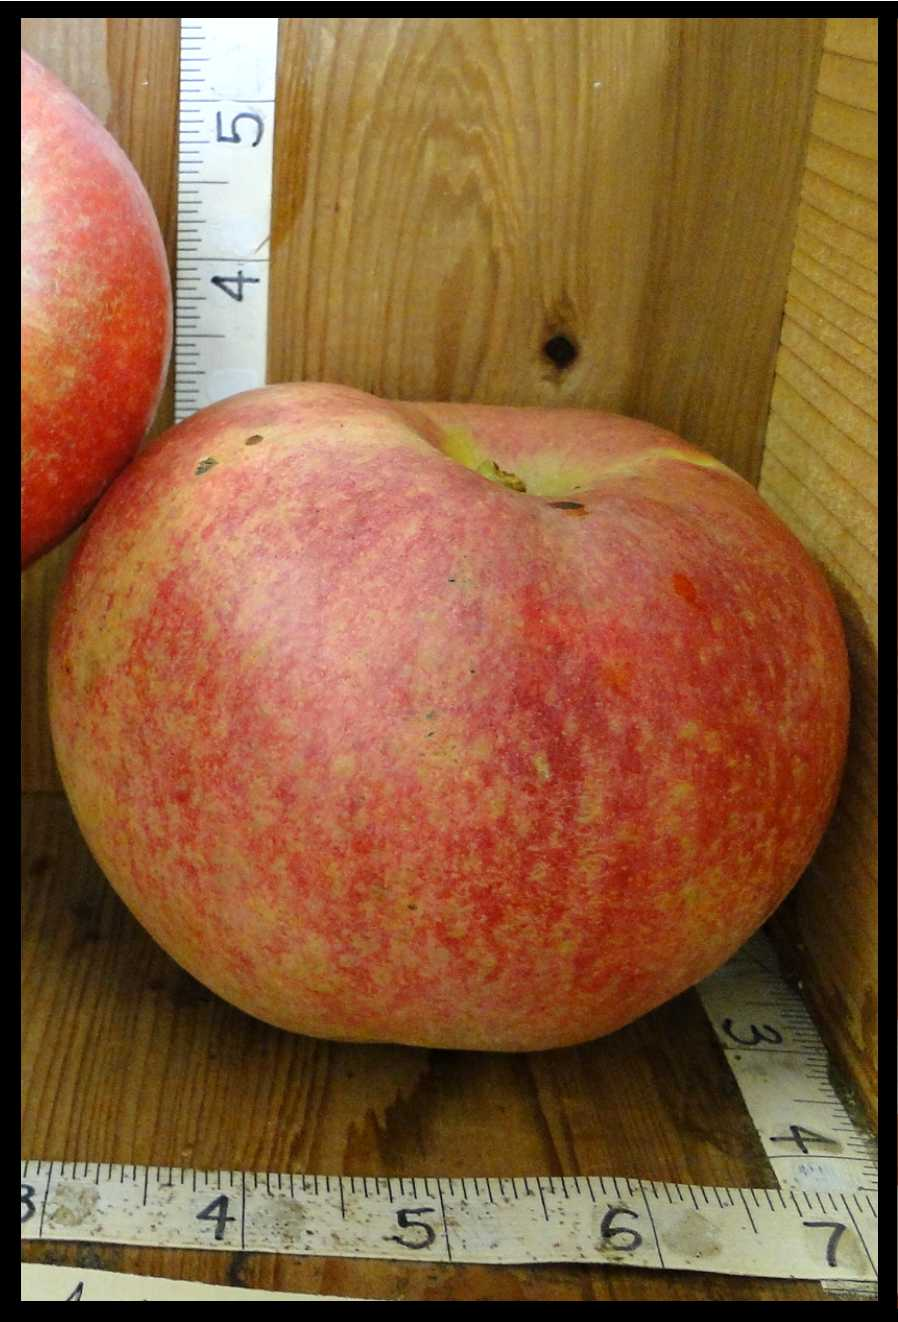 yellow apple with widespread splotchy red